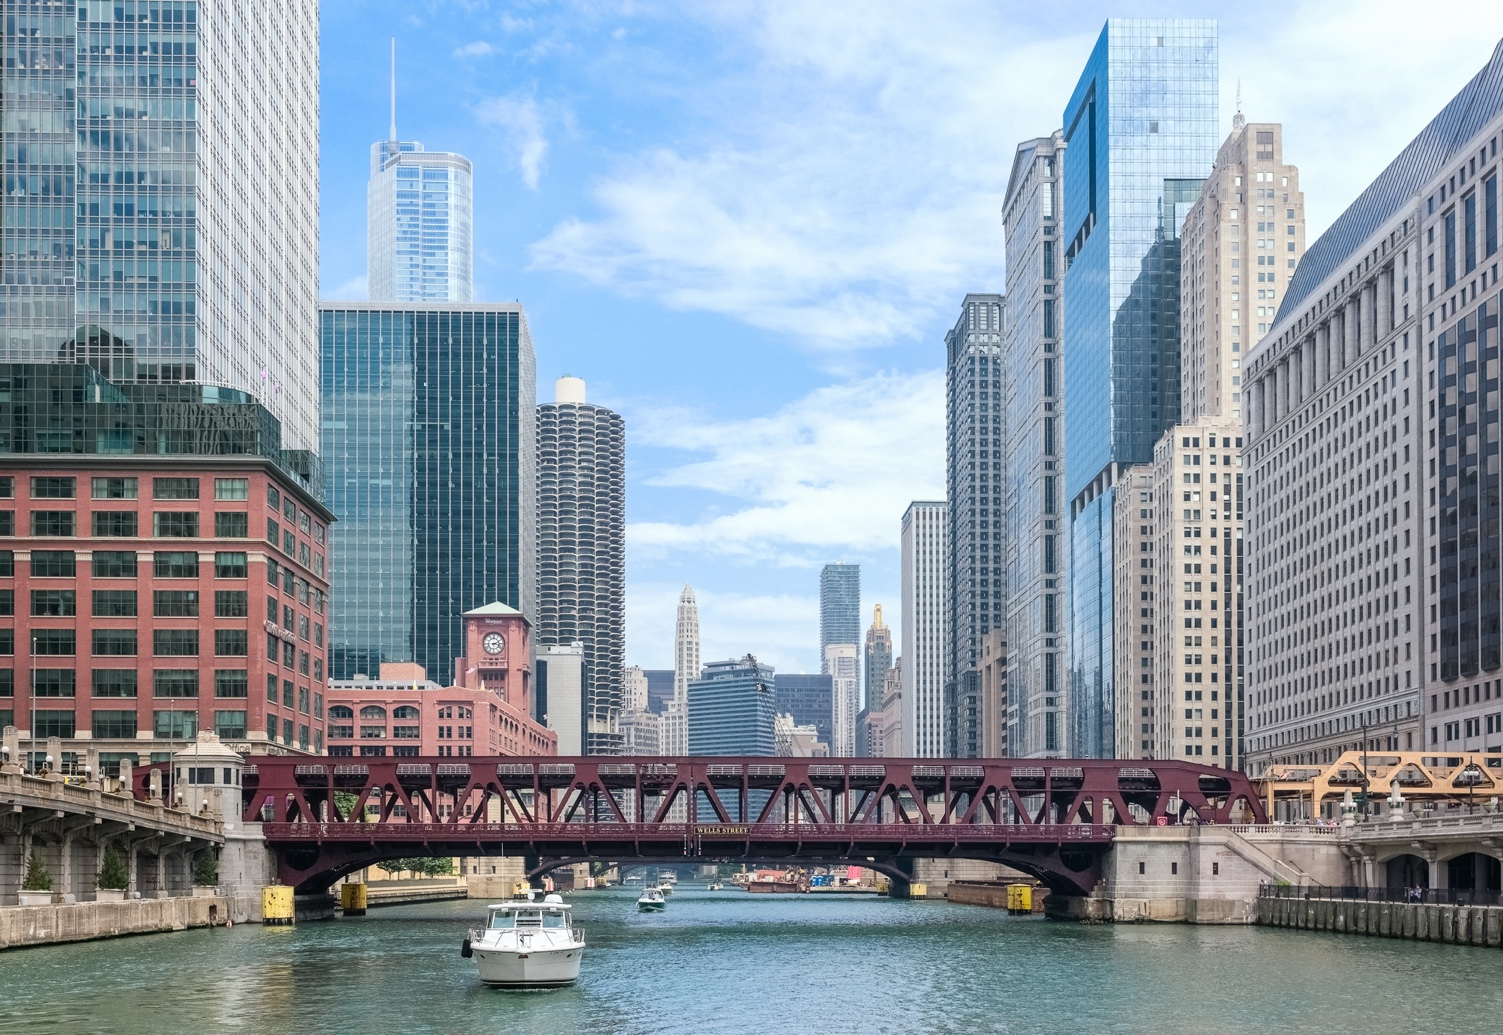 View of the Chicago River